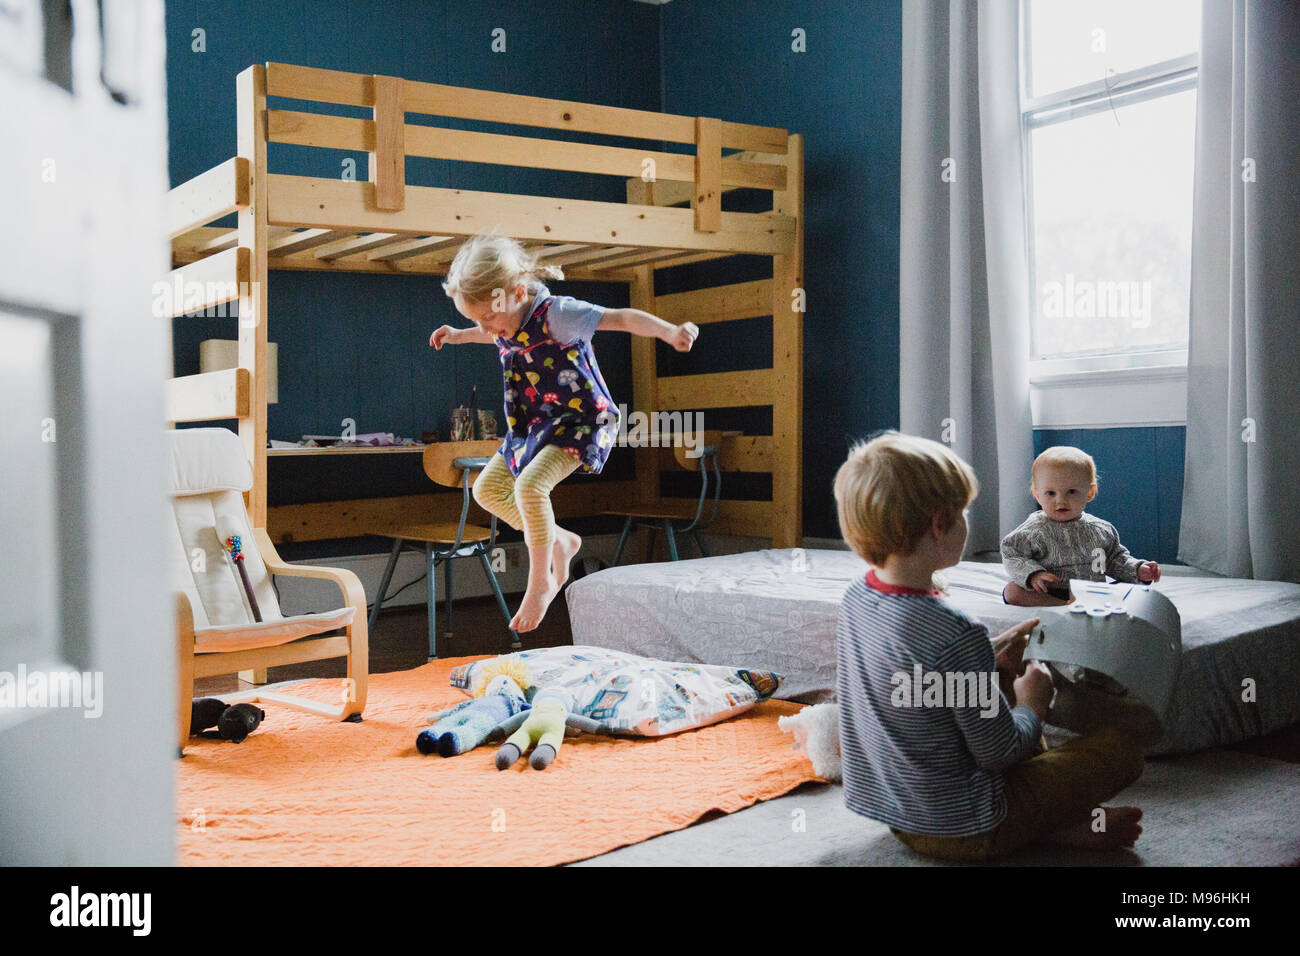 Girl jumping in bedroom next to two other children - Stock Image